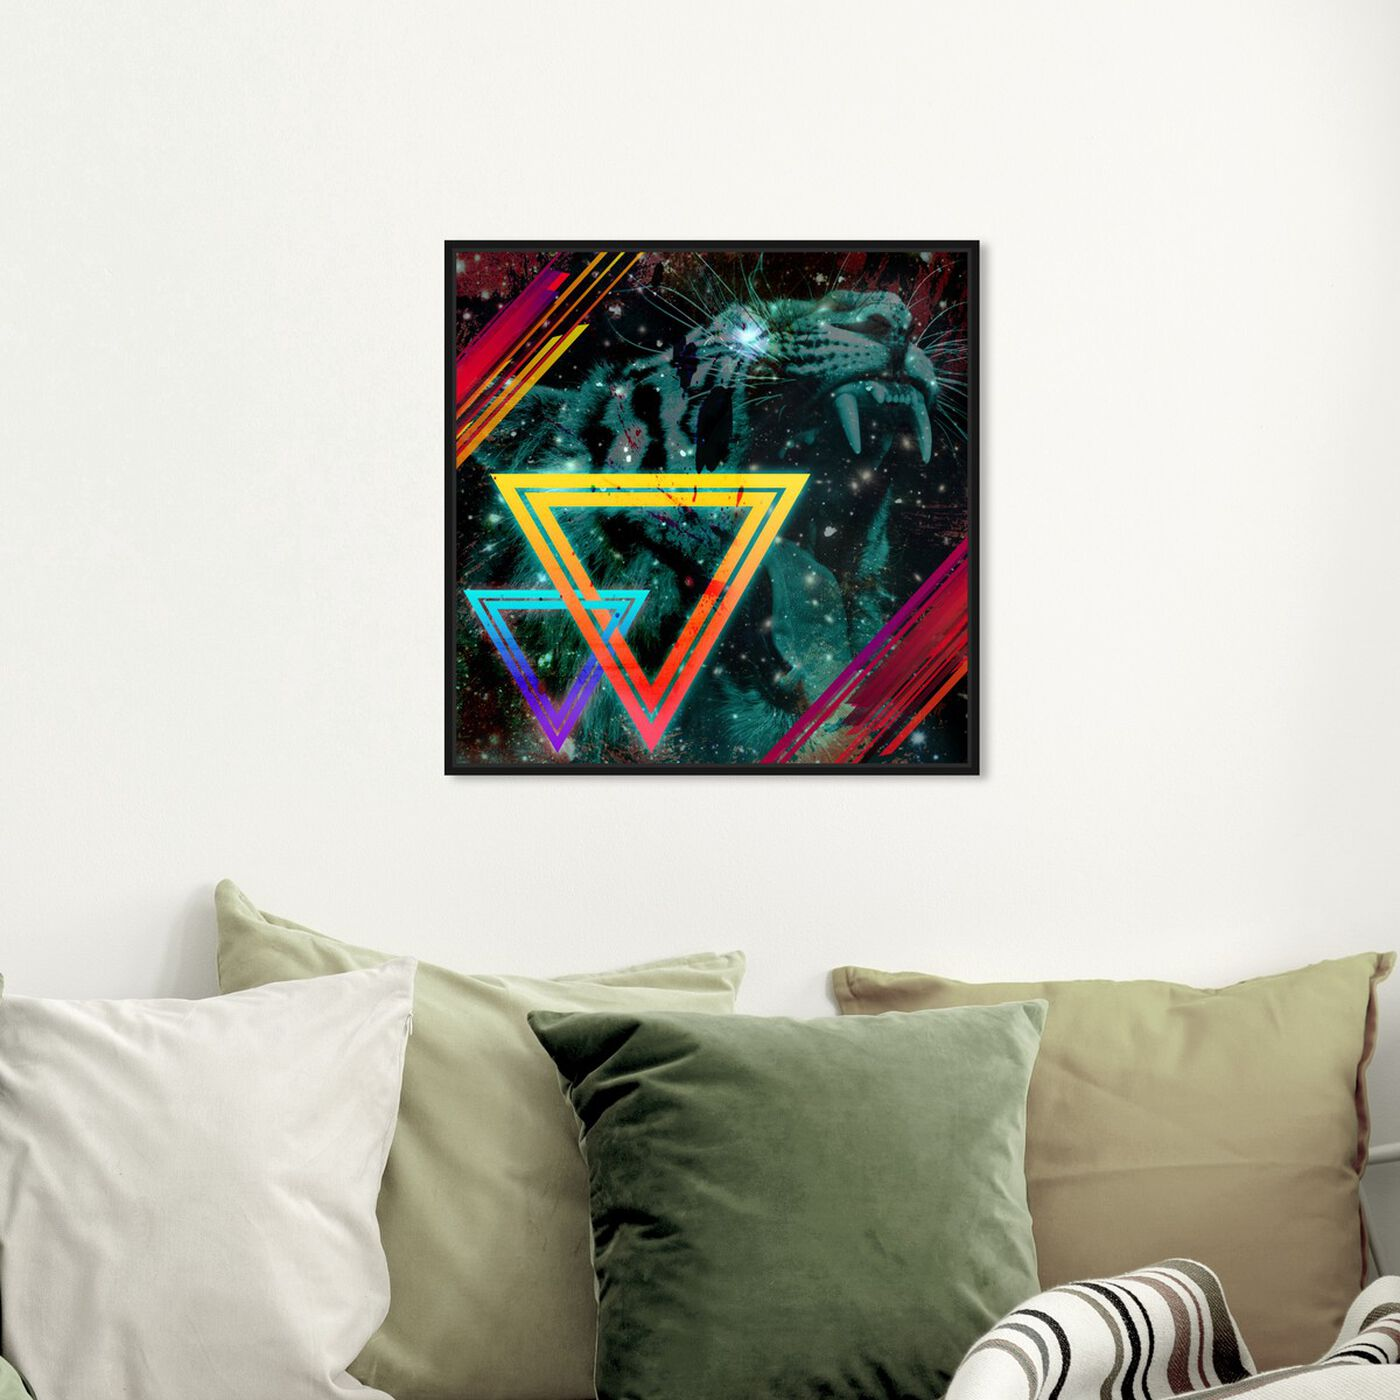 Hanging view of Press Start featuring abstract and geometric art.